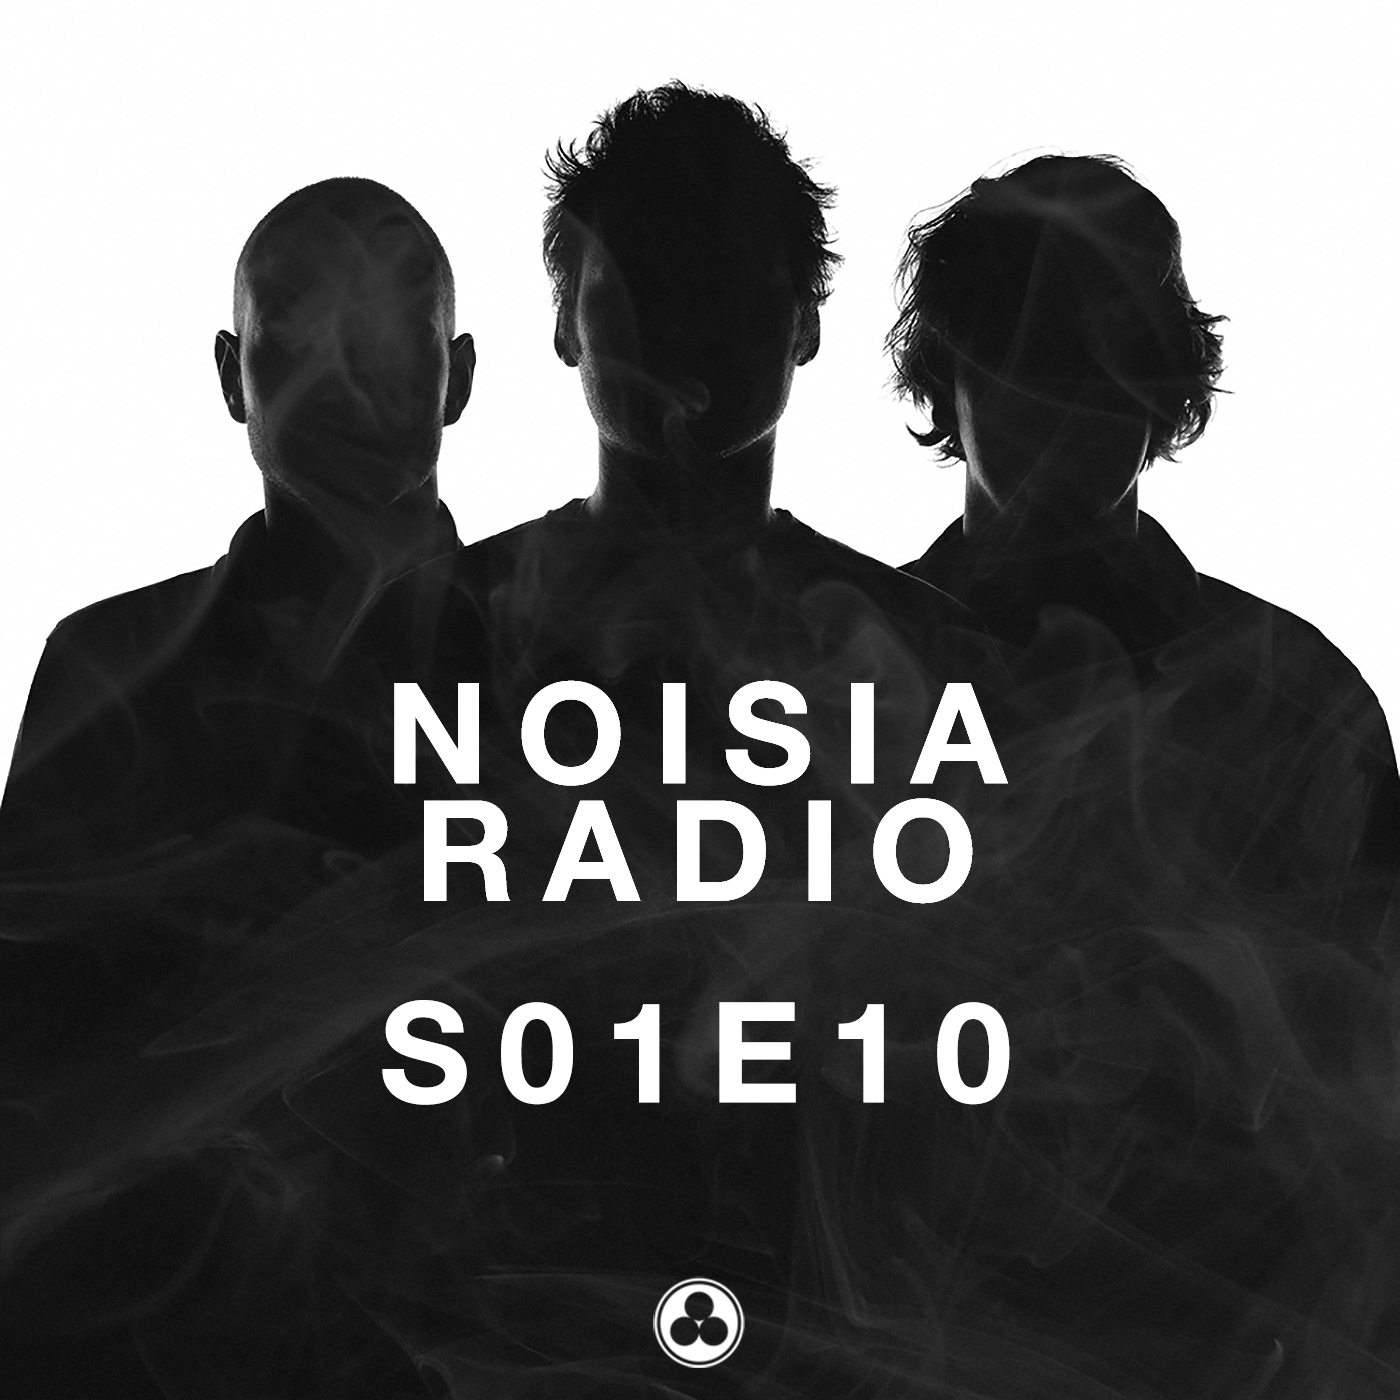 Noisia Radio S01E10 (incl. The Upbeats guest mix)